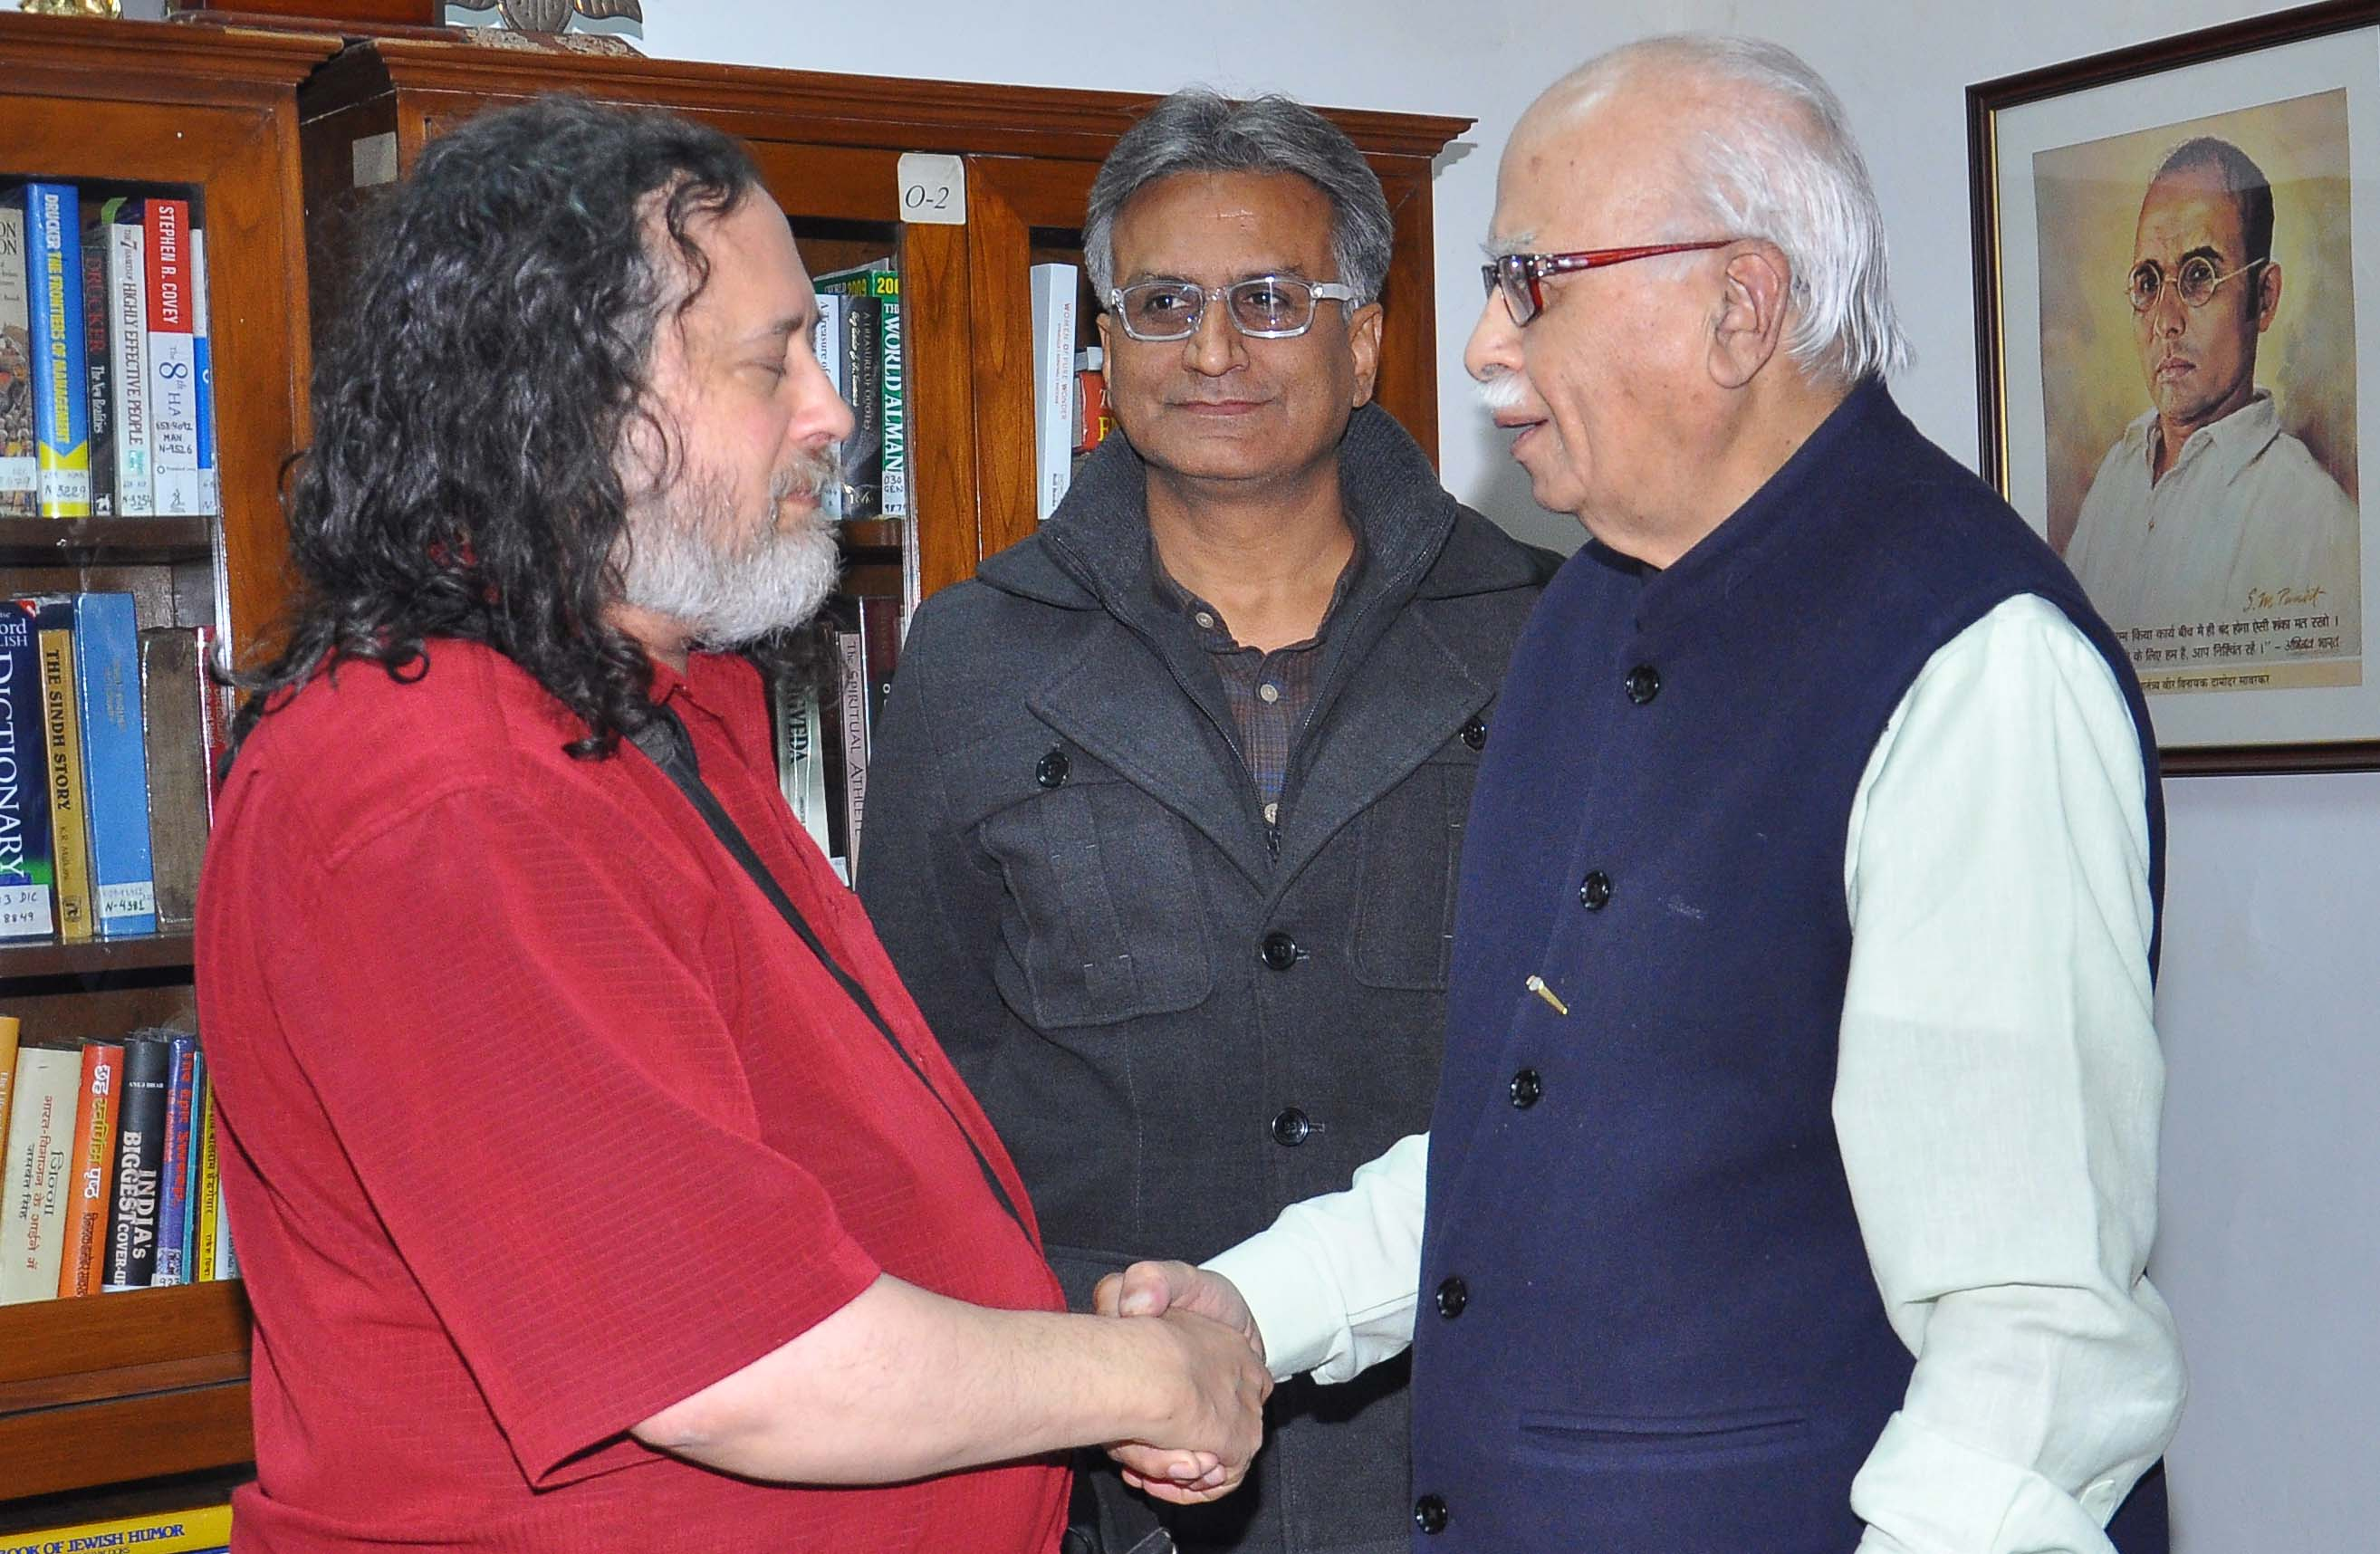 sangkrit.net founder free software movement visited founder internet growth engine india Shardul Pandey Talks To L. K. Advani & Richard Stallman